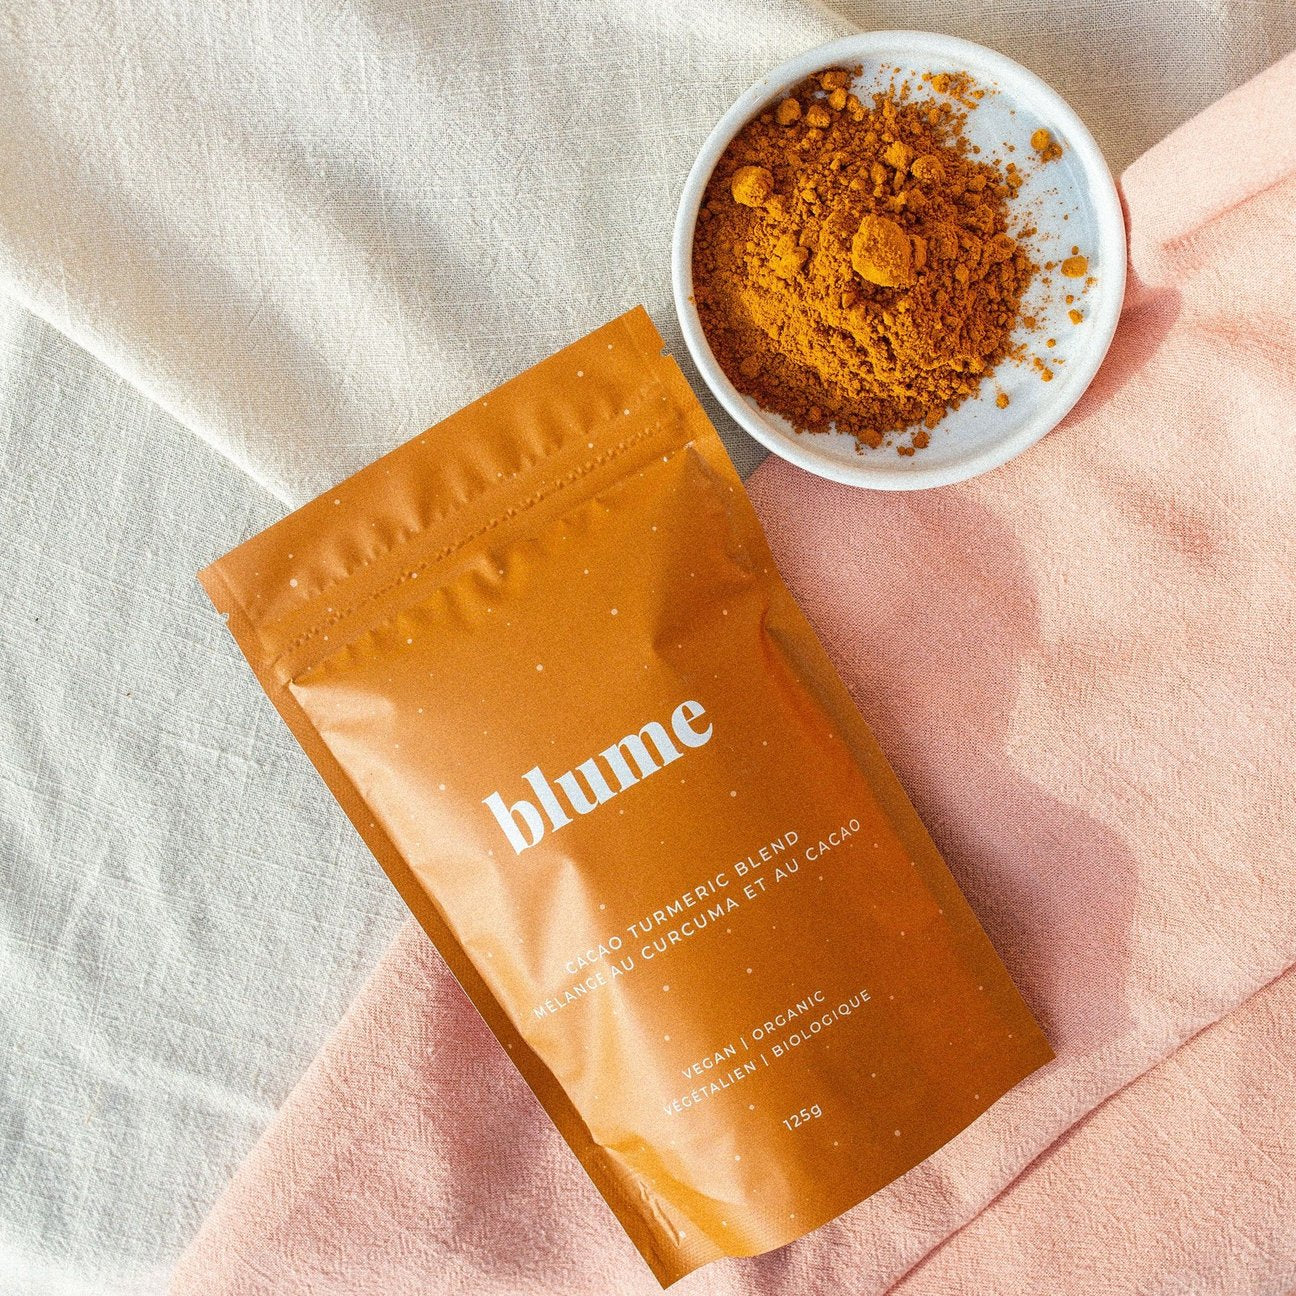 Blume: Cacao Turmeric Latte Blend